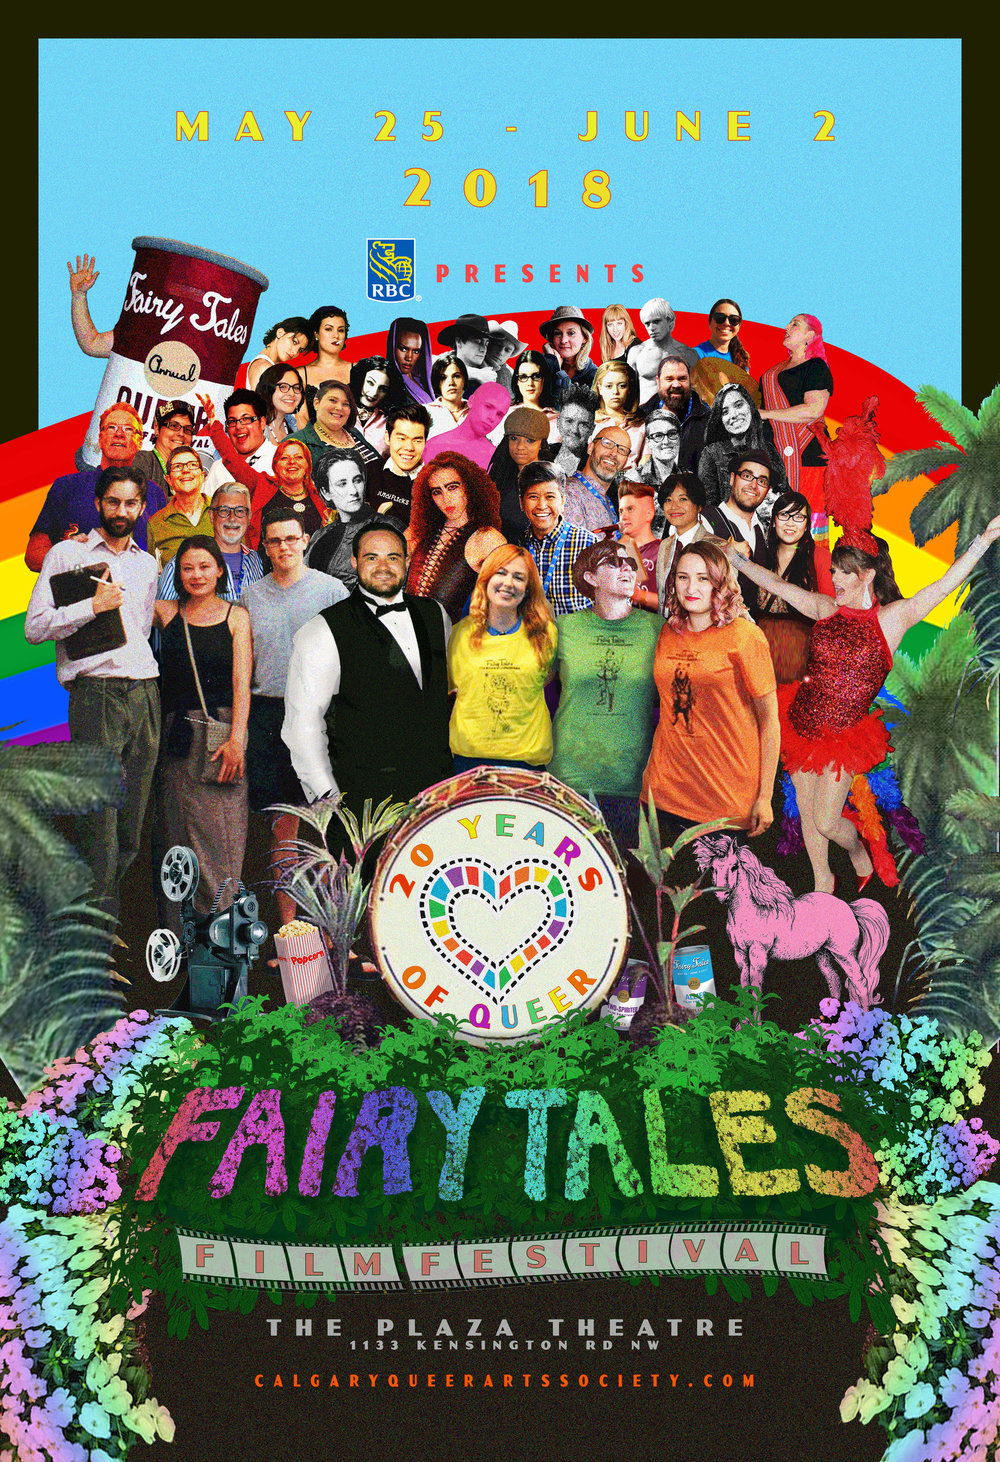 We are quickly approaching our 20th Annual Fairy Tales Calgary's Queer Film Festival! - From May 25 - June 2, enjoy our diverse section of queer-centric movies, documentaries, short films, panel discussions, and more exciting events!In order for you to maximize your festival experience, we have created a list of important FAQs that cover some of the top questions we receive each year. If you still have a burning question after reviewing our FAQs, please don't hesitate to get in touch!